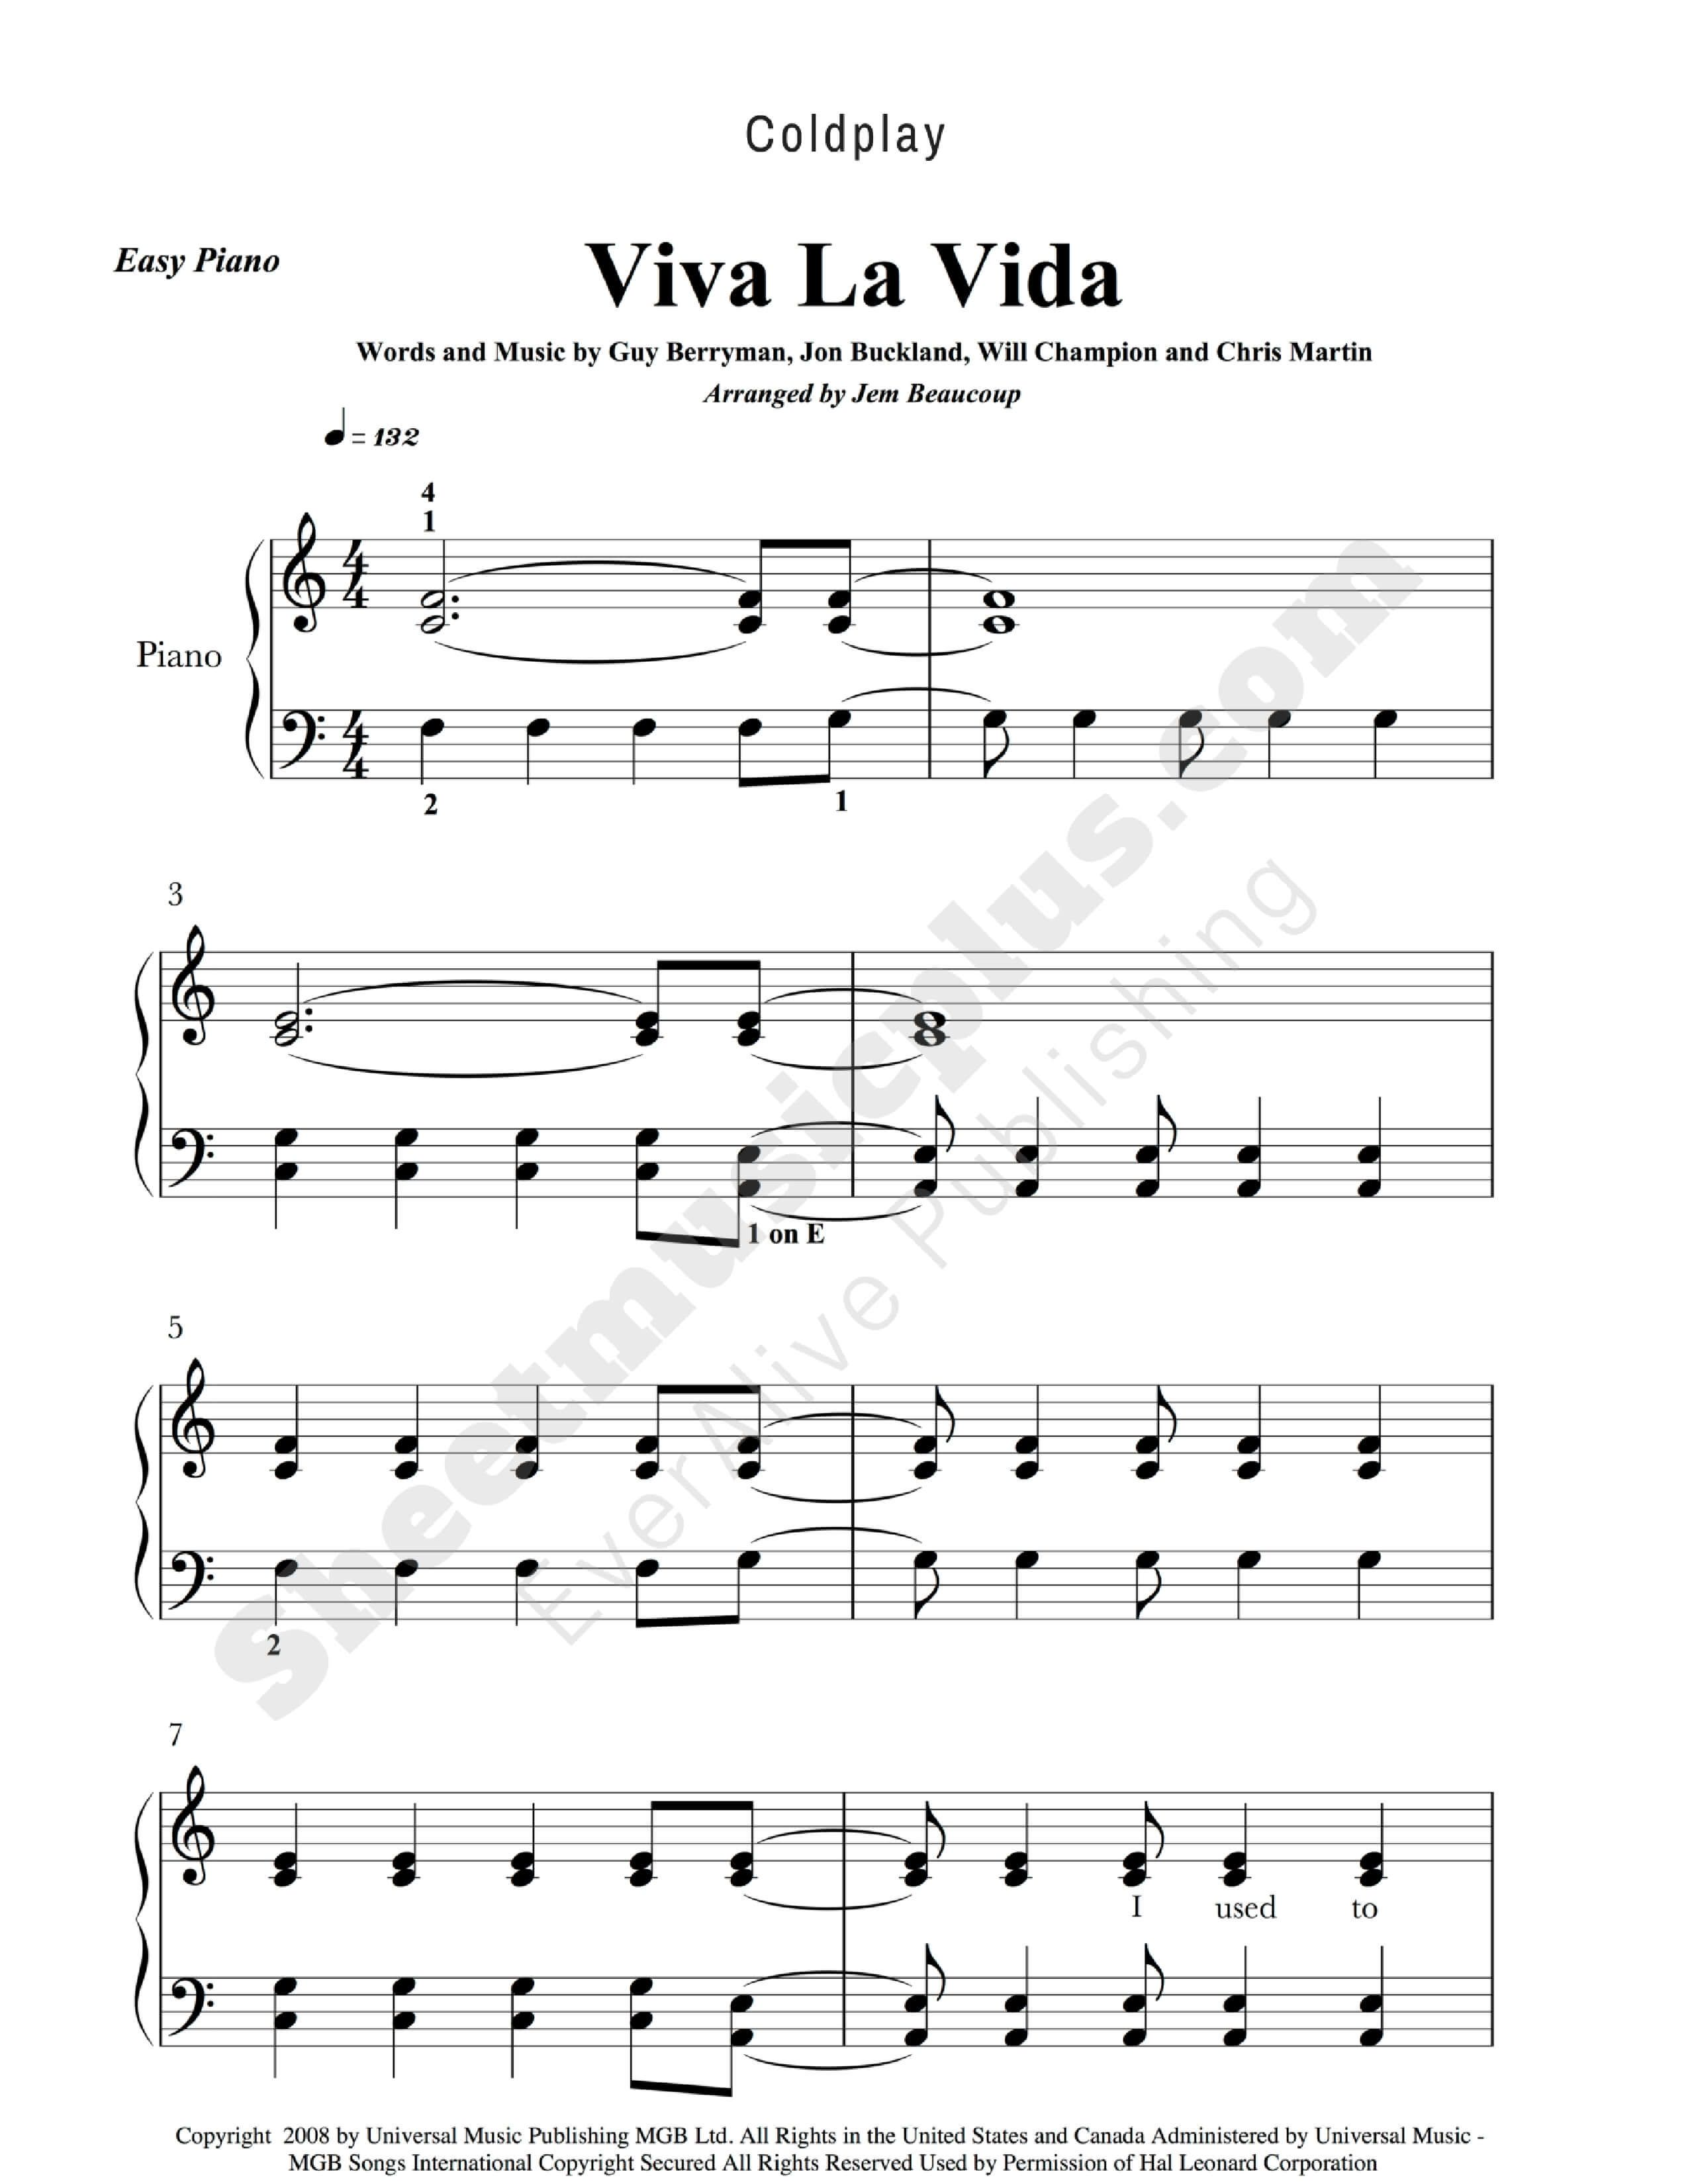 Coldplay Viva La Vida Easy Piano Music Download And Print